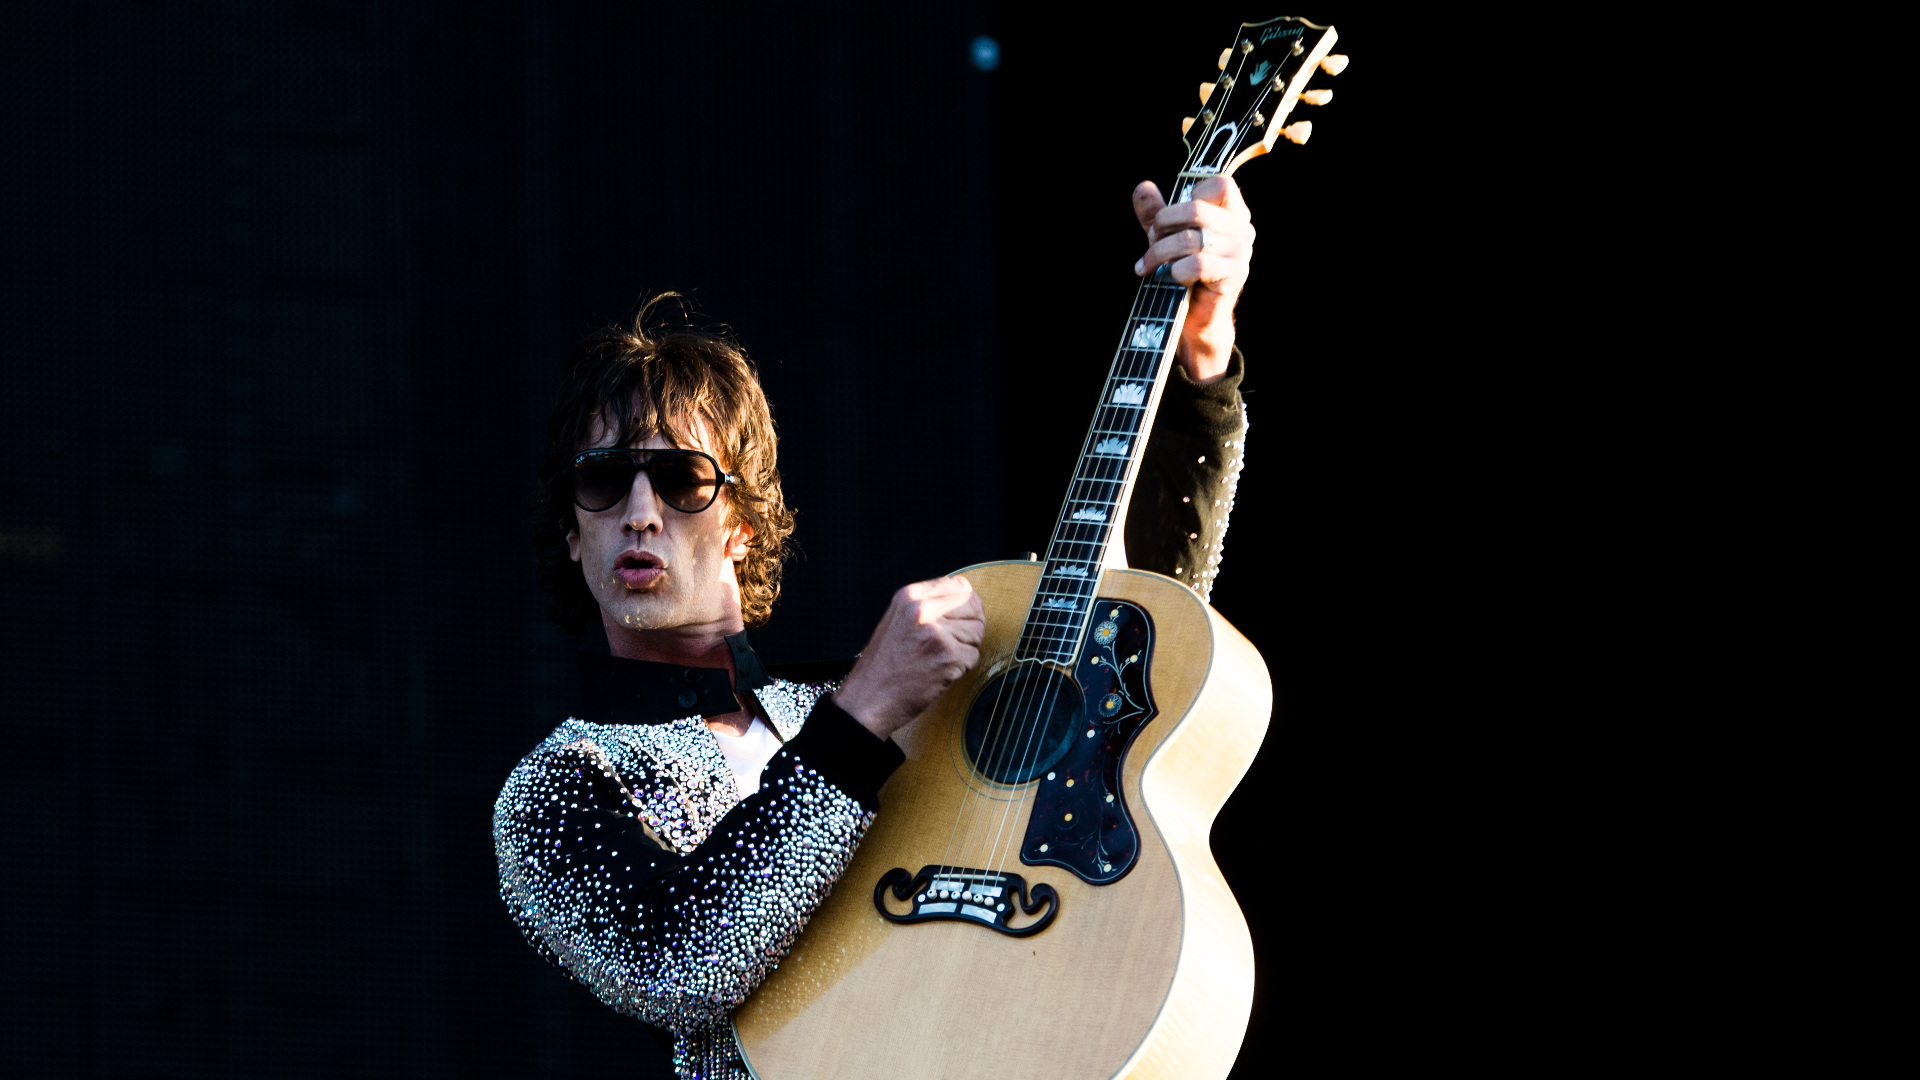 RICHARD ASHCROFT (Sold Out)